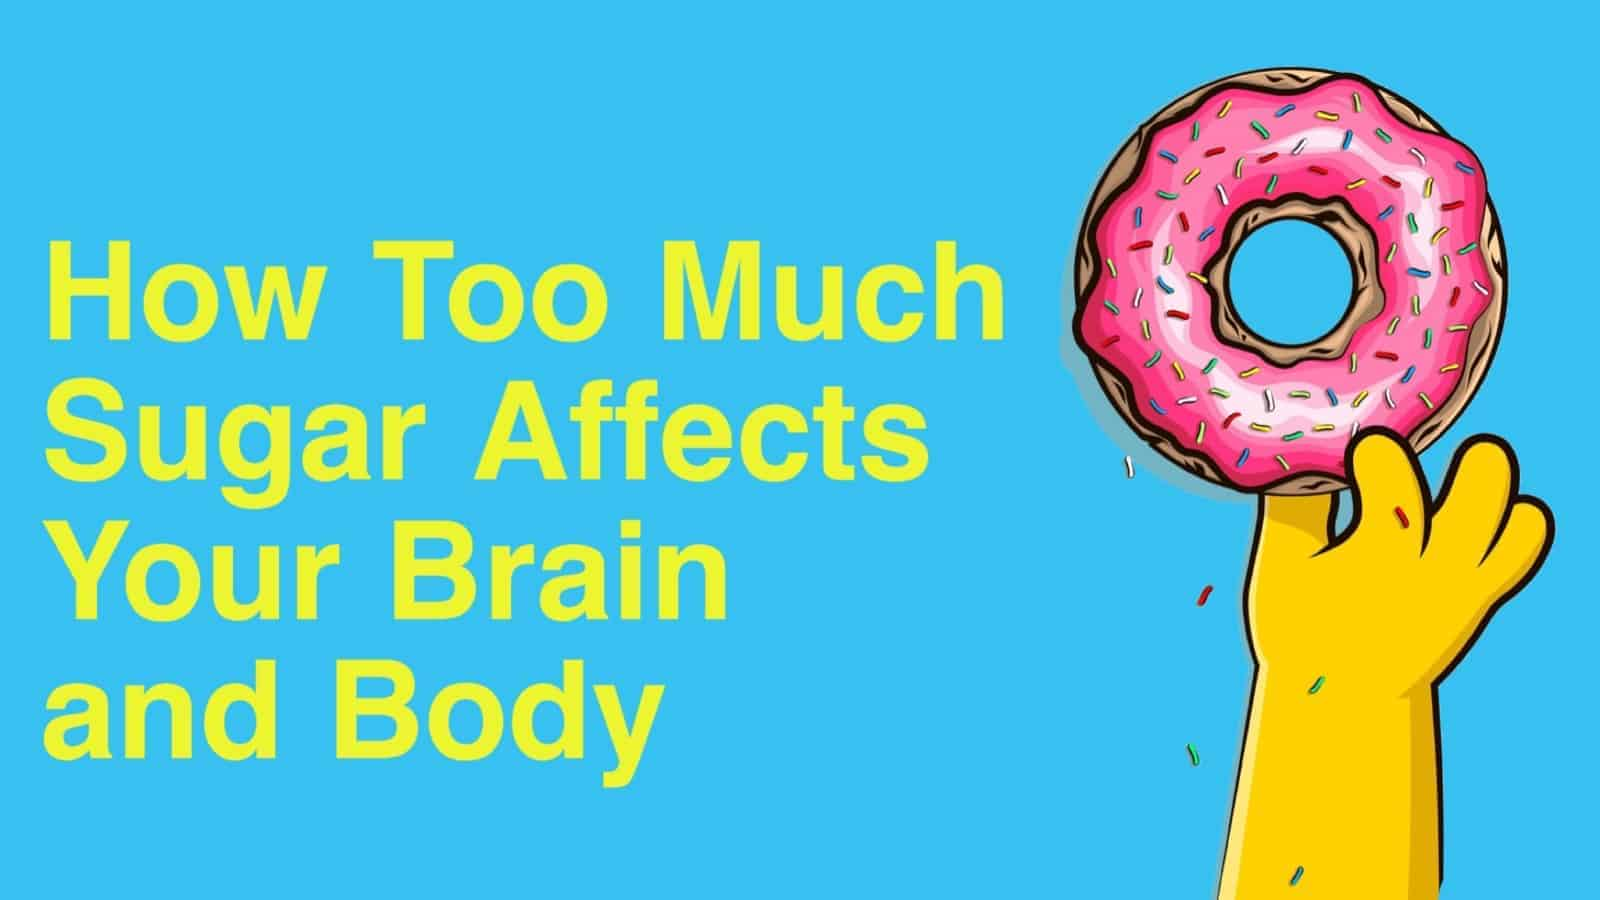 How Too Much Sugar Affects Your Brain and Body